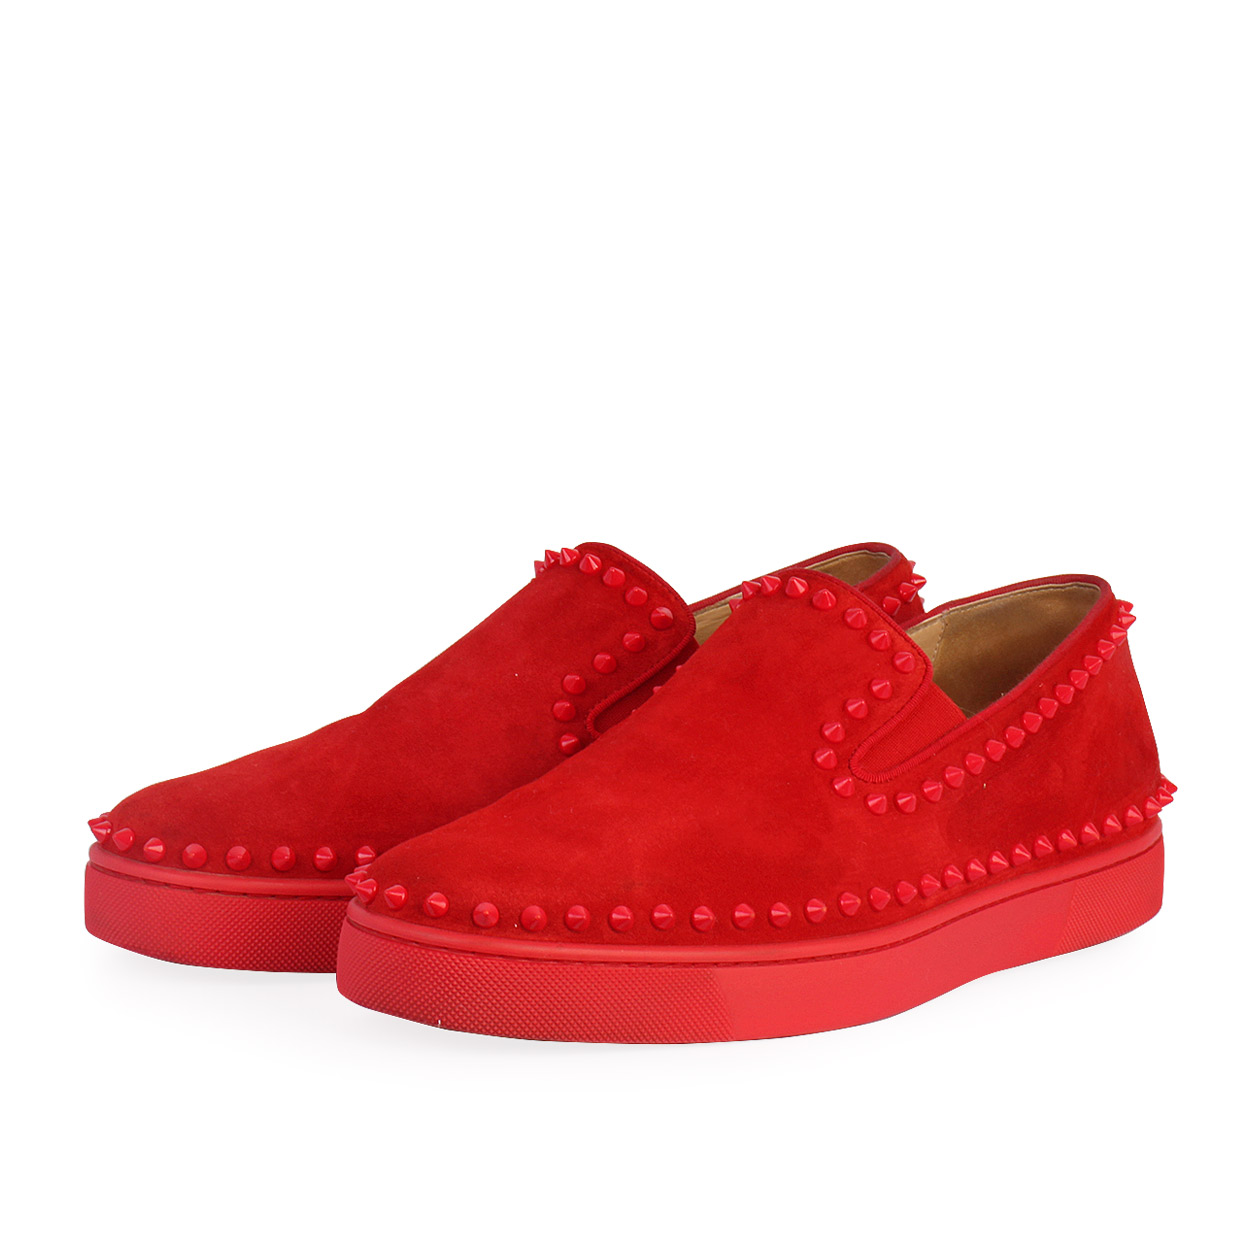 watch 8c794 5853b CHRISTIAN LOUBOUTIN Velours Pik Boat Veau Spikes Sneakers Red - S: 43.5 (9)